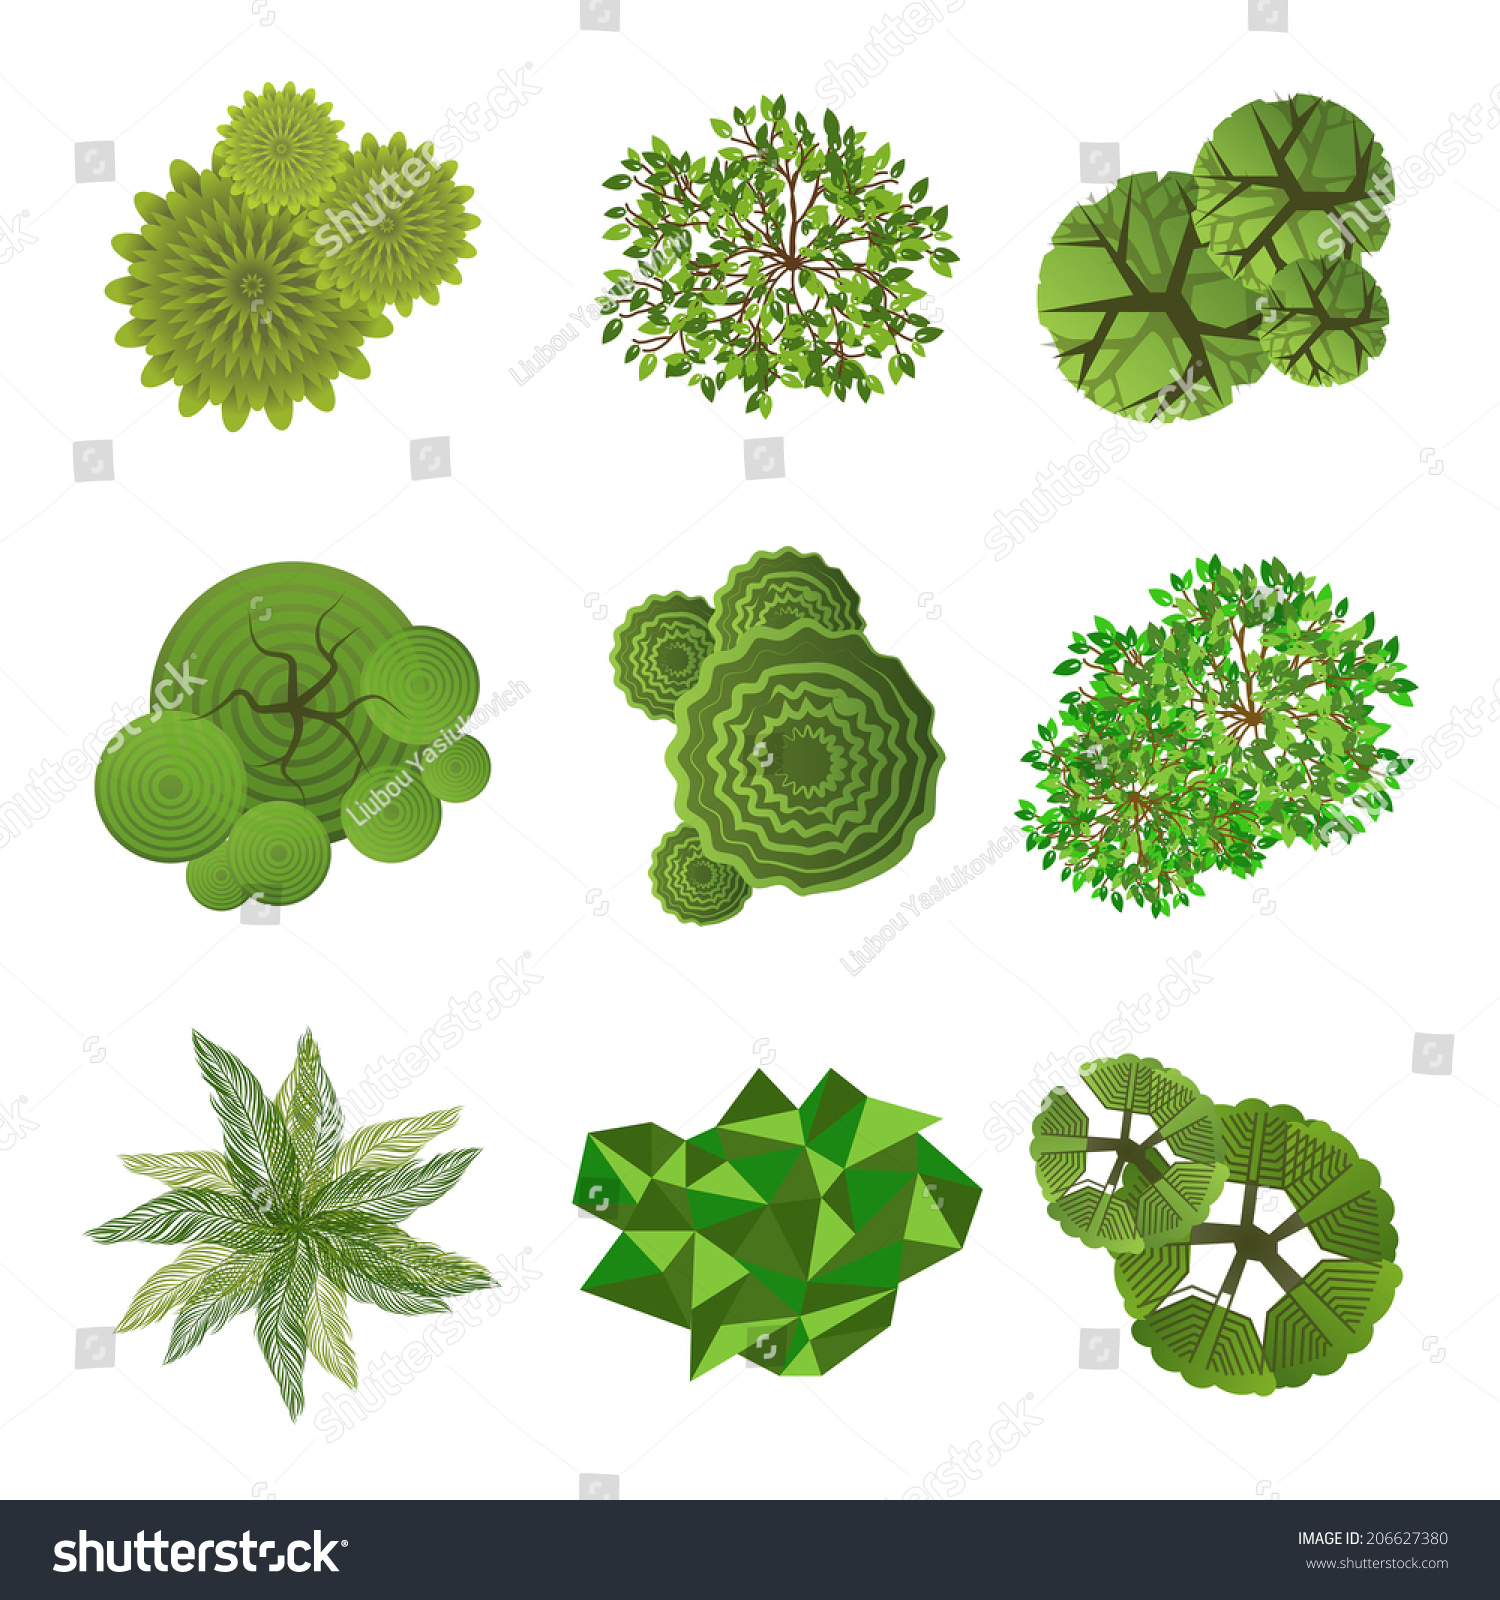 Trees top view landscape design use stock vector 206627380 for Top view design